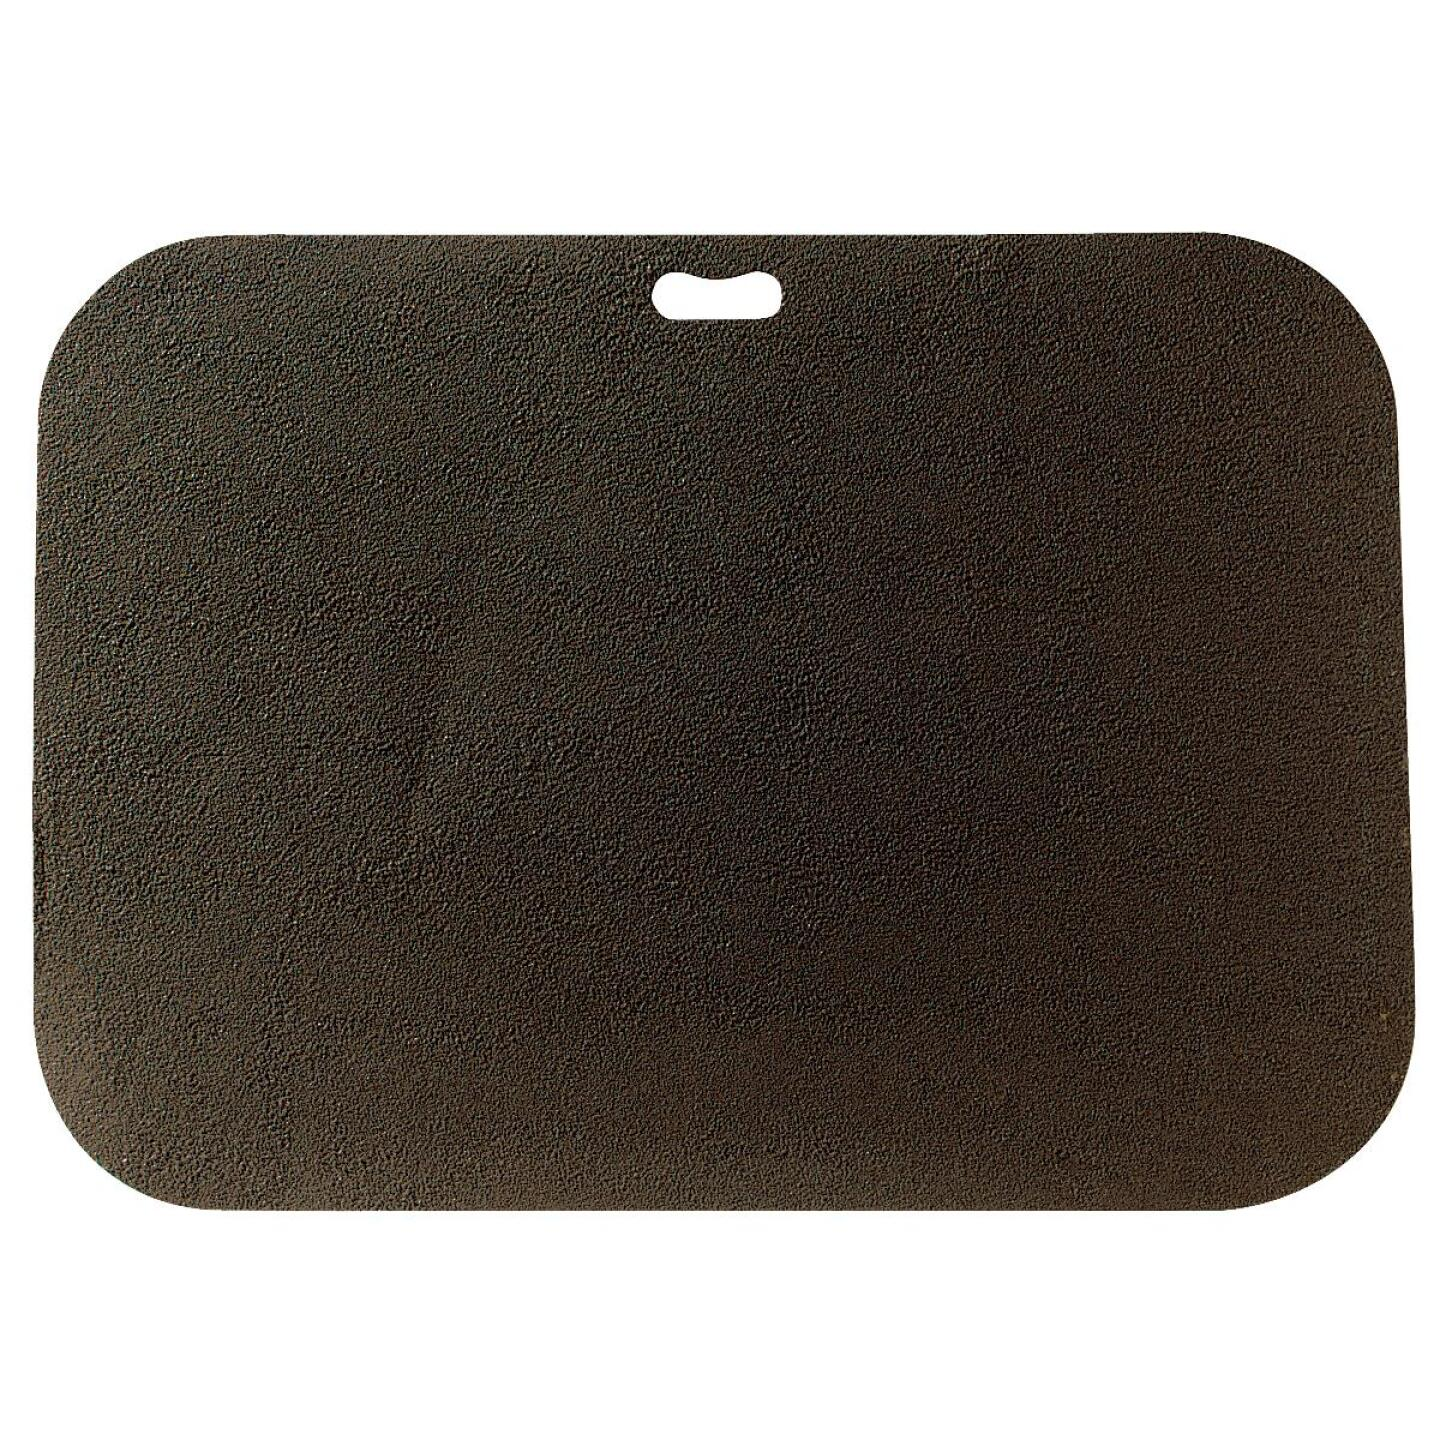 Diversitech The Original Grill Pad 30 In. W. x 42 In. L. Brown Rectangle Grill Pad Image 1